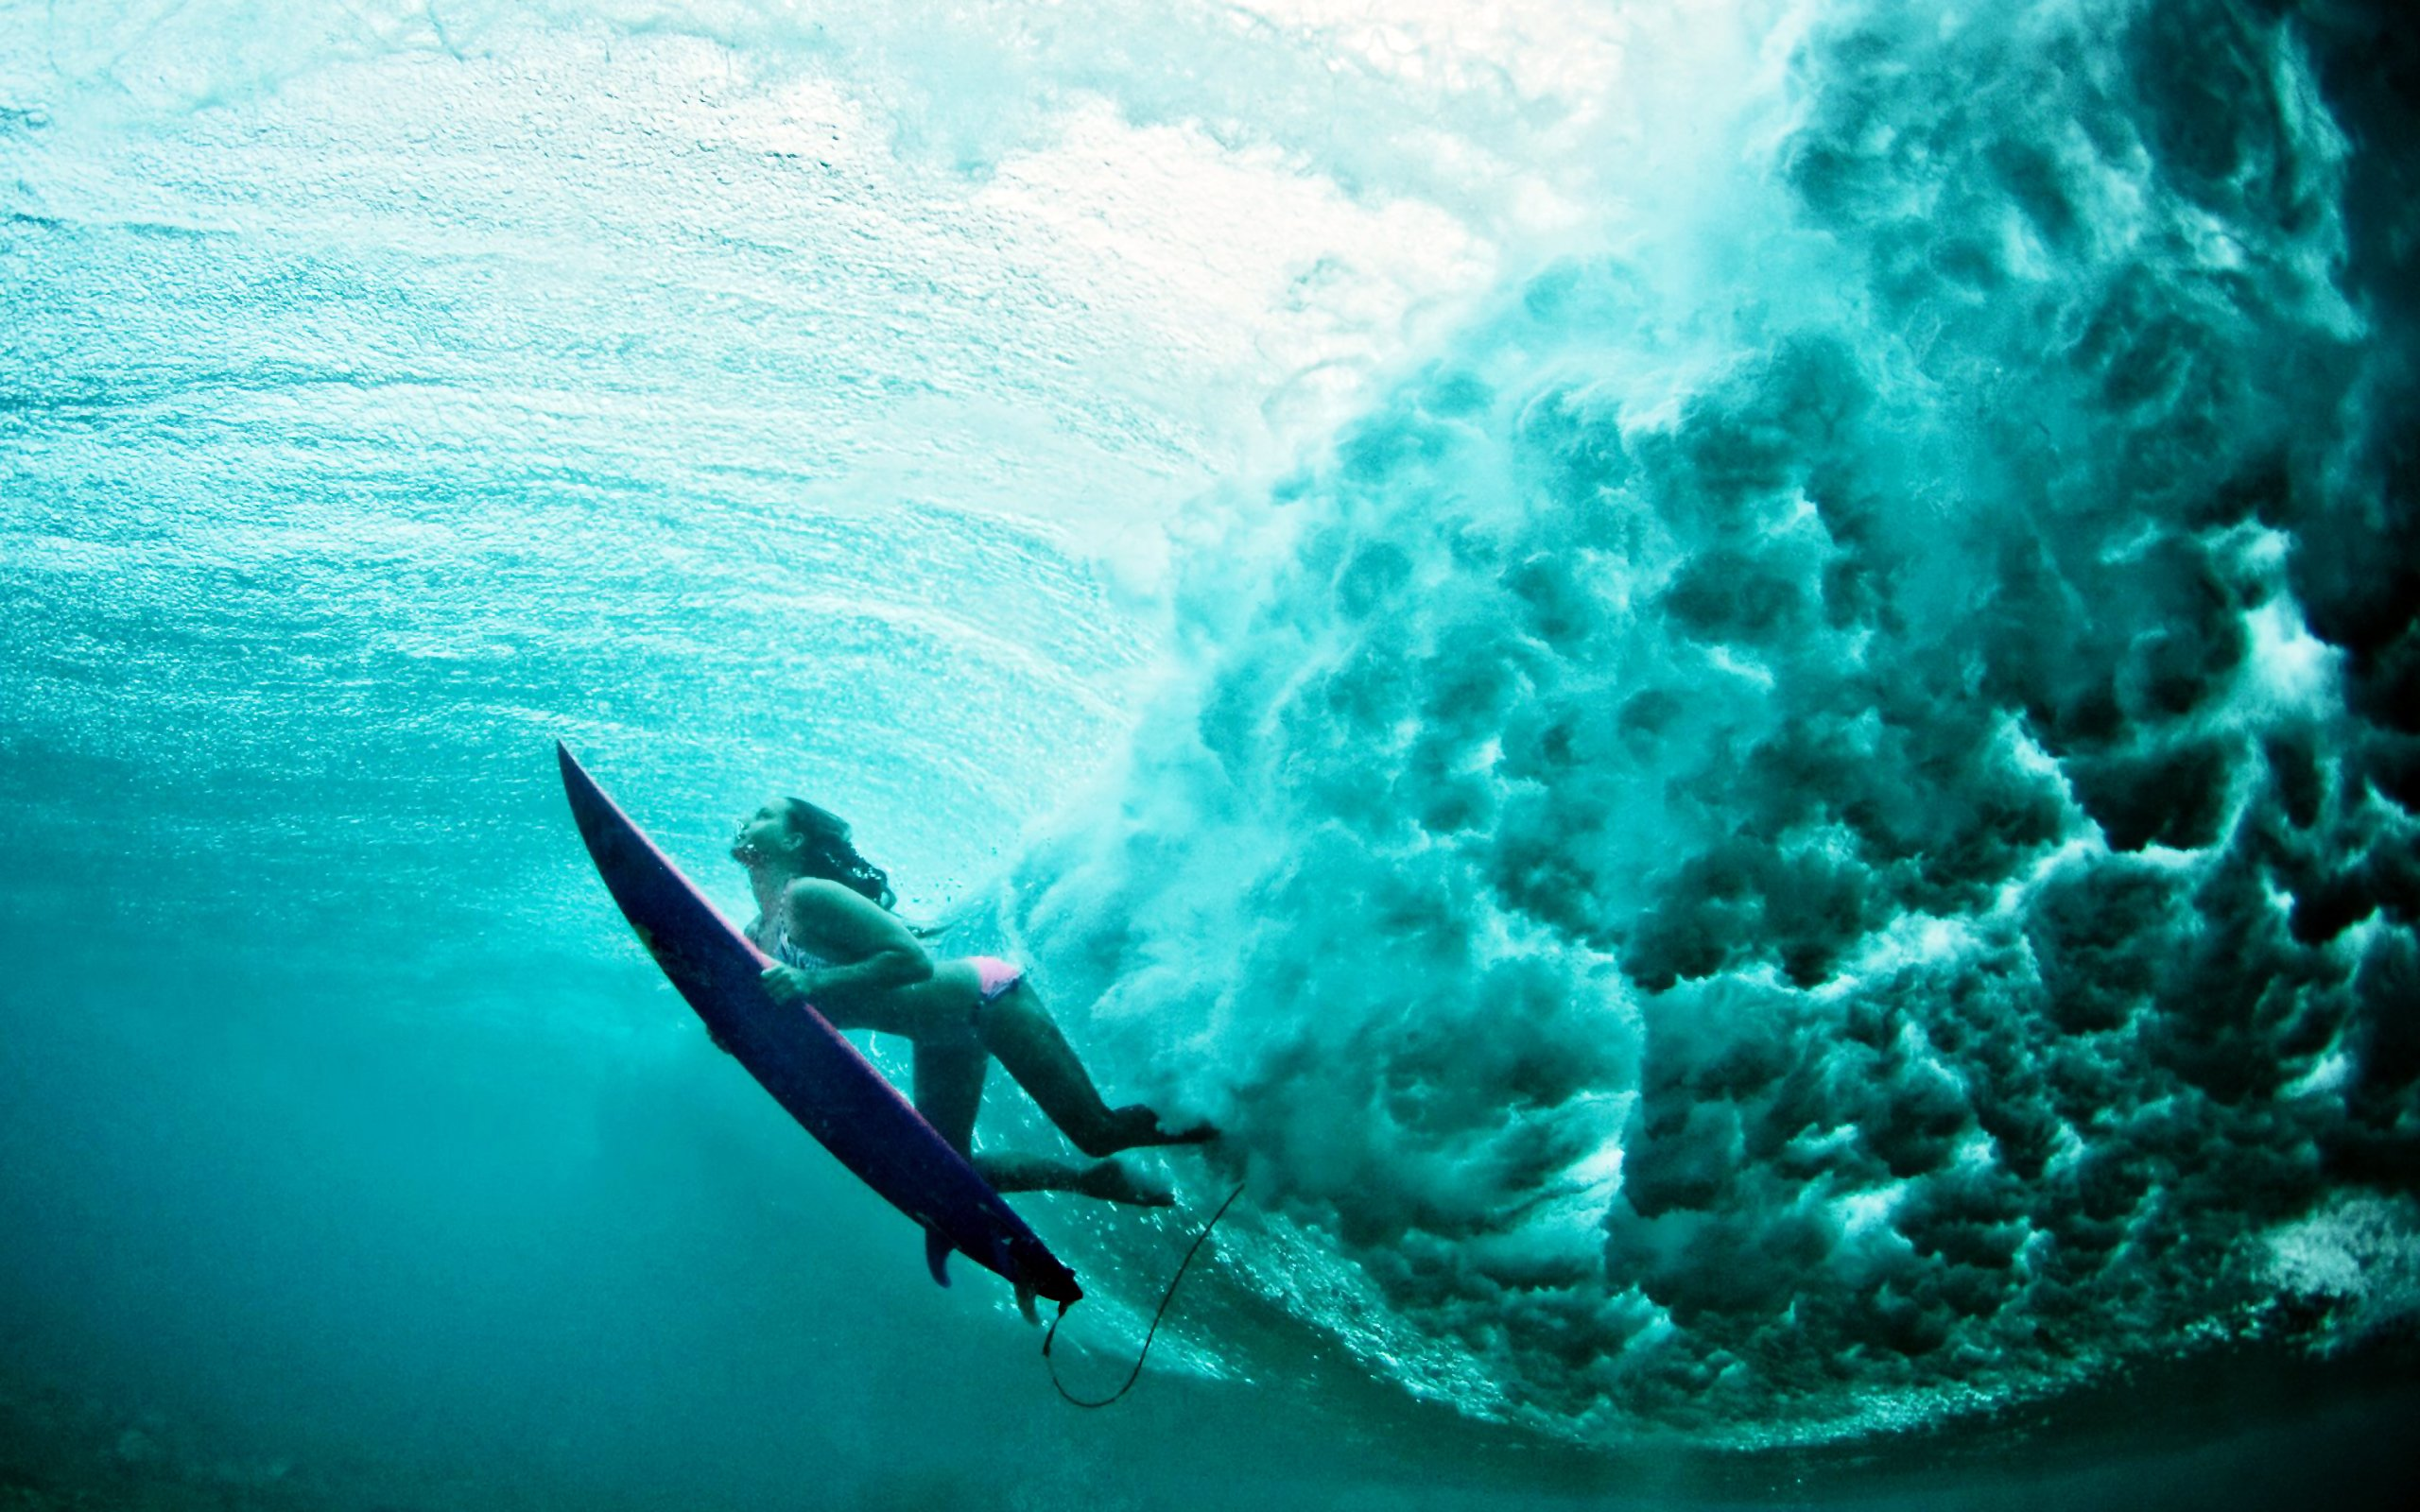 terralonginqua Underwater surf girl wallpaper 2560x1600